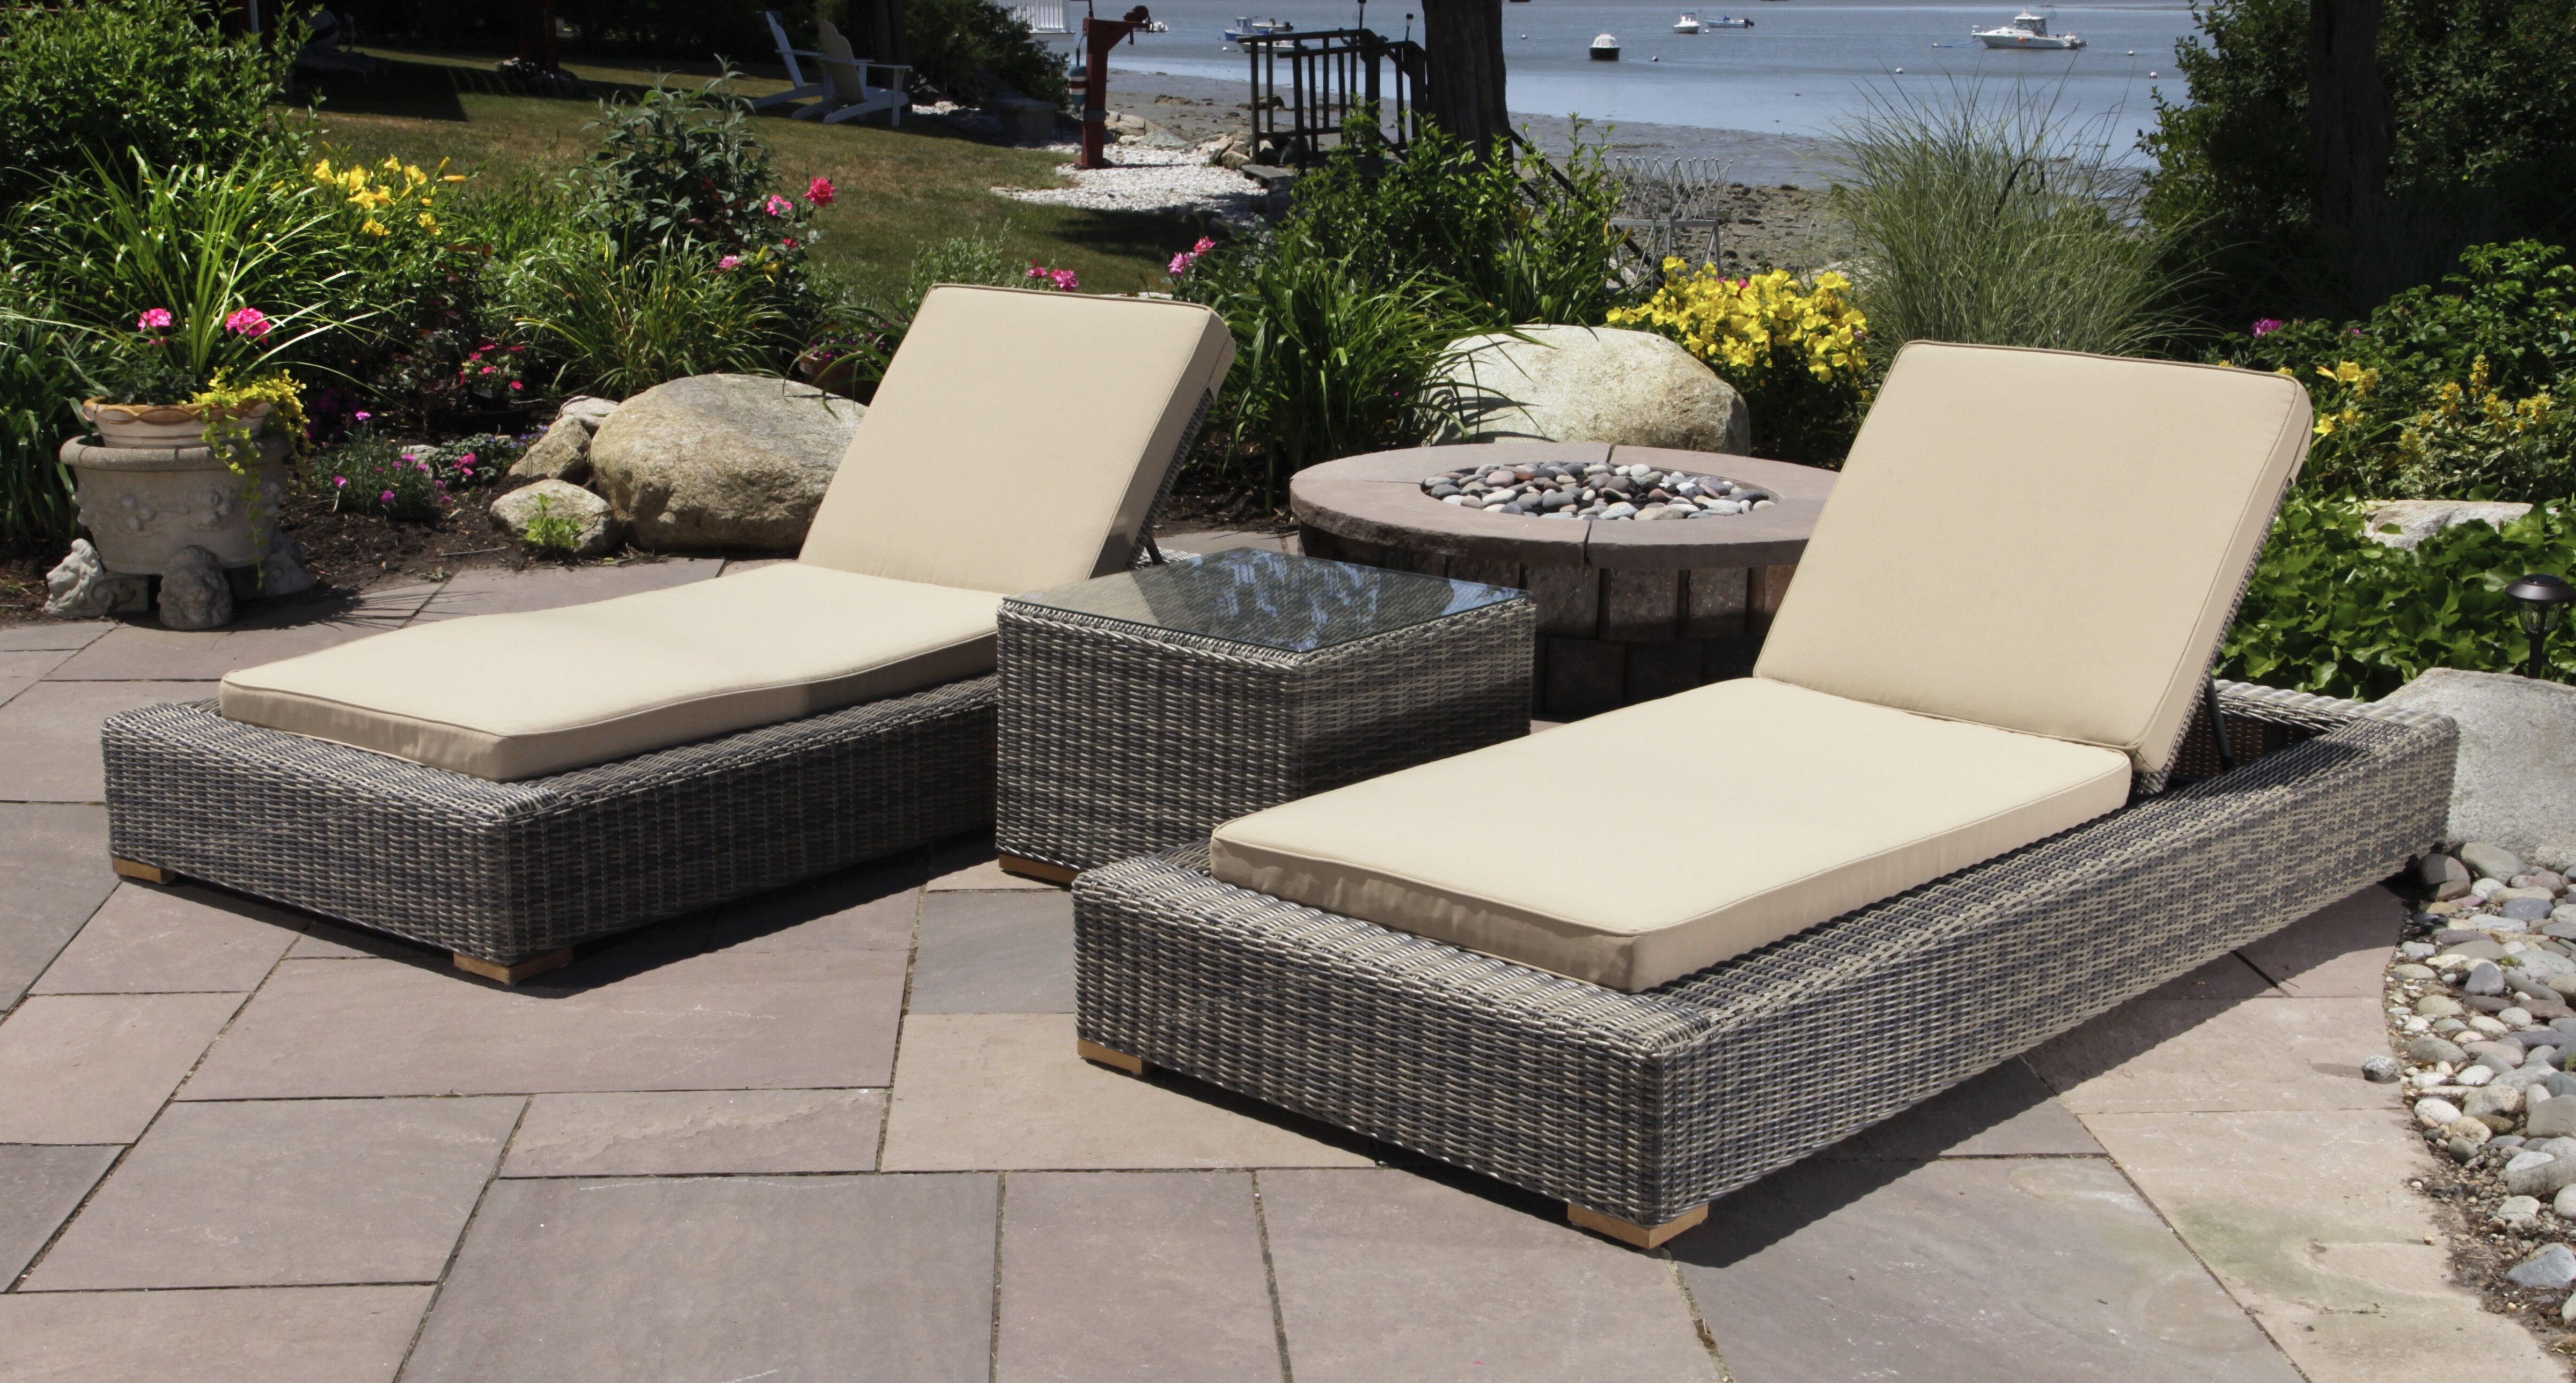 Corsica 3 Piece Chaise Lounge Set With Cushions And Table With 2019 Outdoor 3 Piece Wicker Chaise Lounges And Table Sets (View 2 of 25)